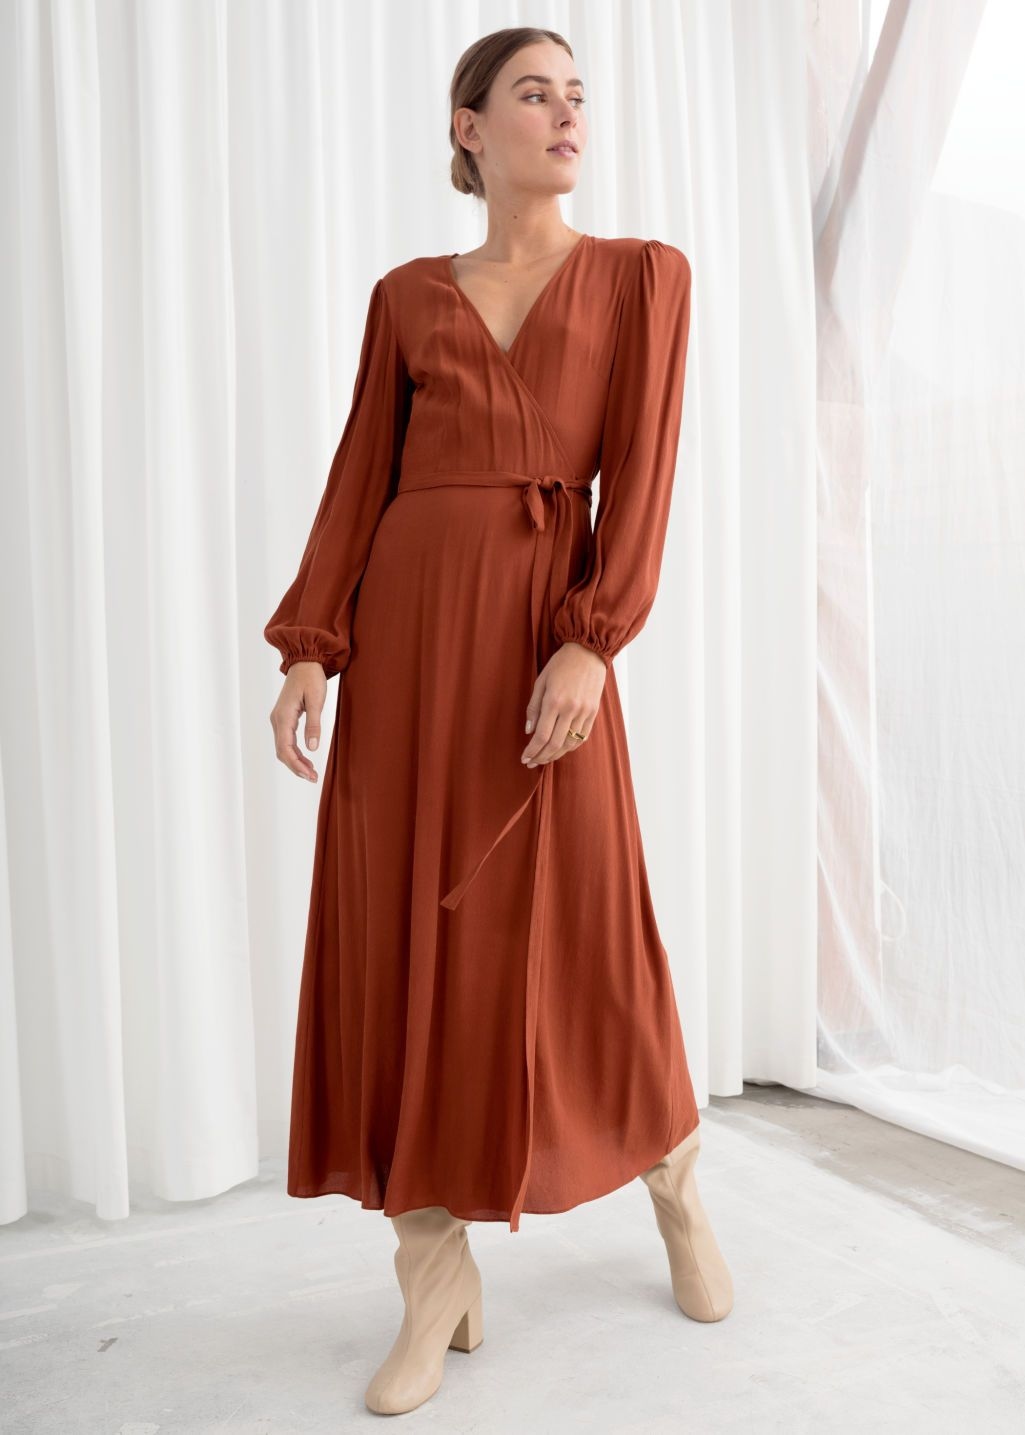 Wrap Midi Dress -   17 dress Midi formatura ideas